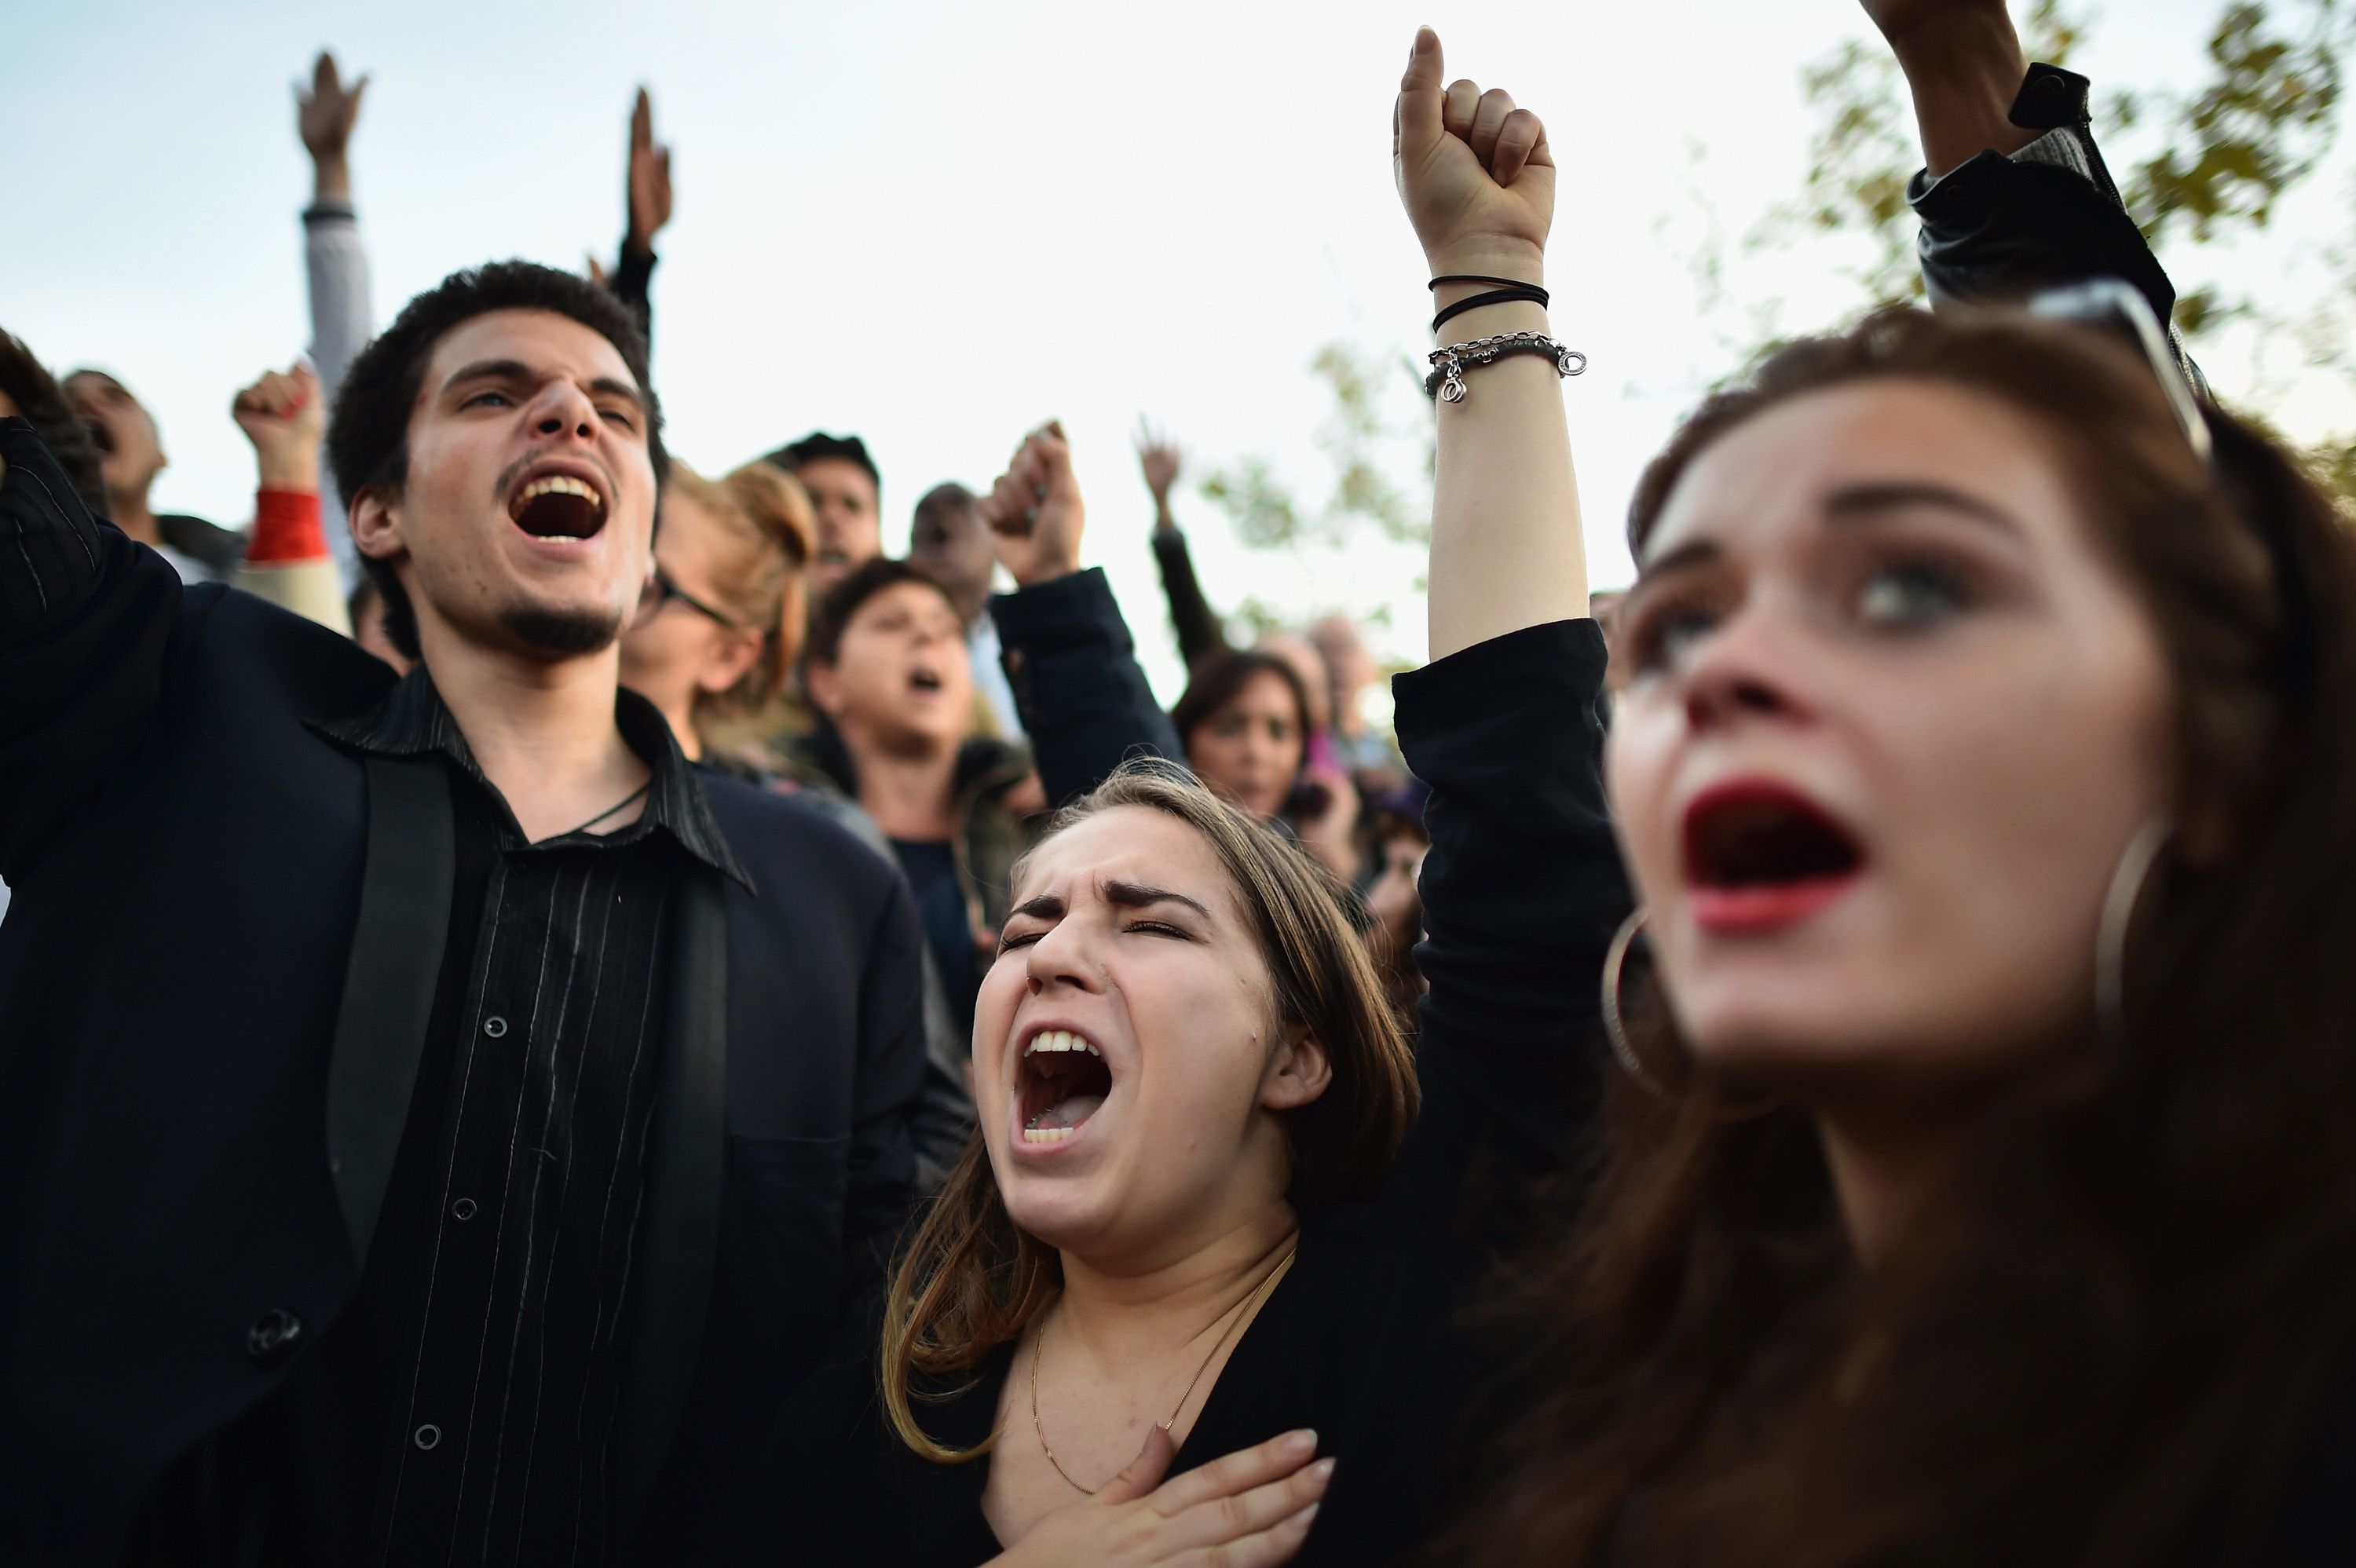 Mourners in Paris, France on November 15, 2015